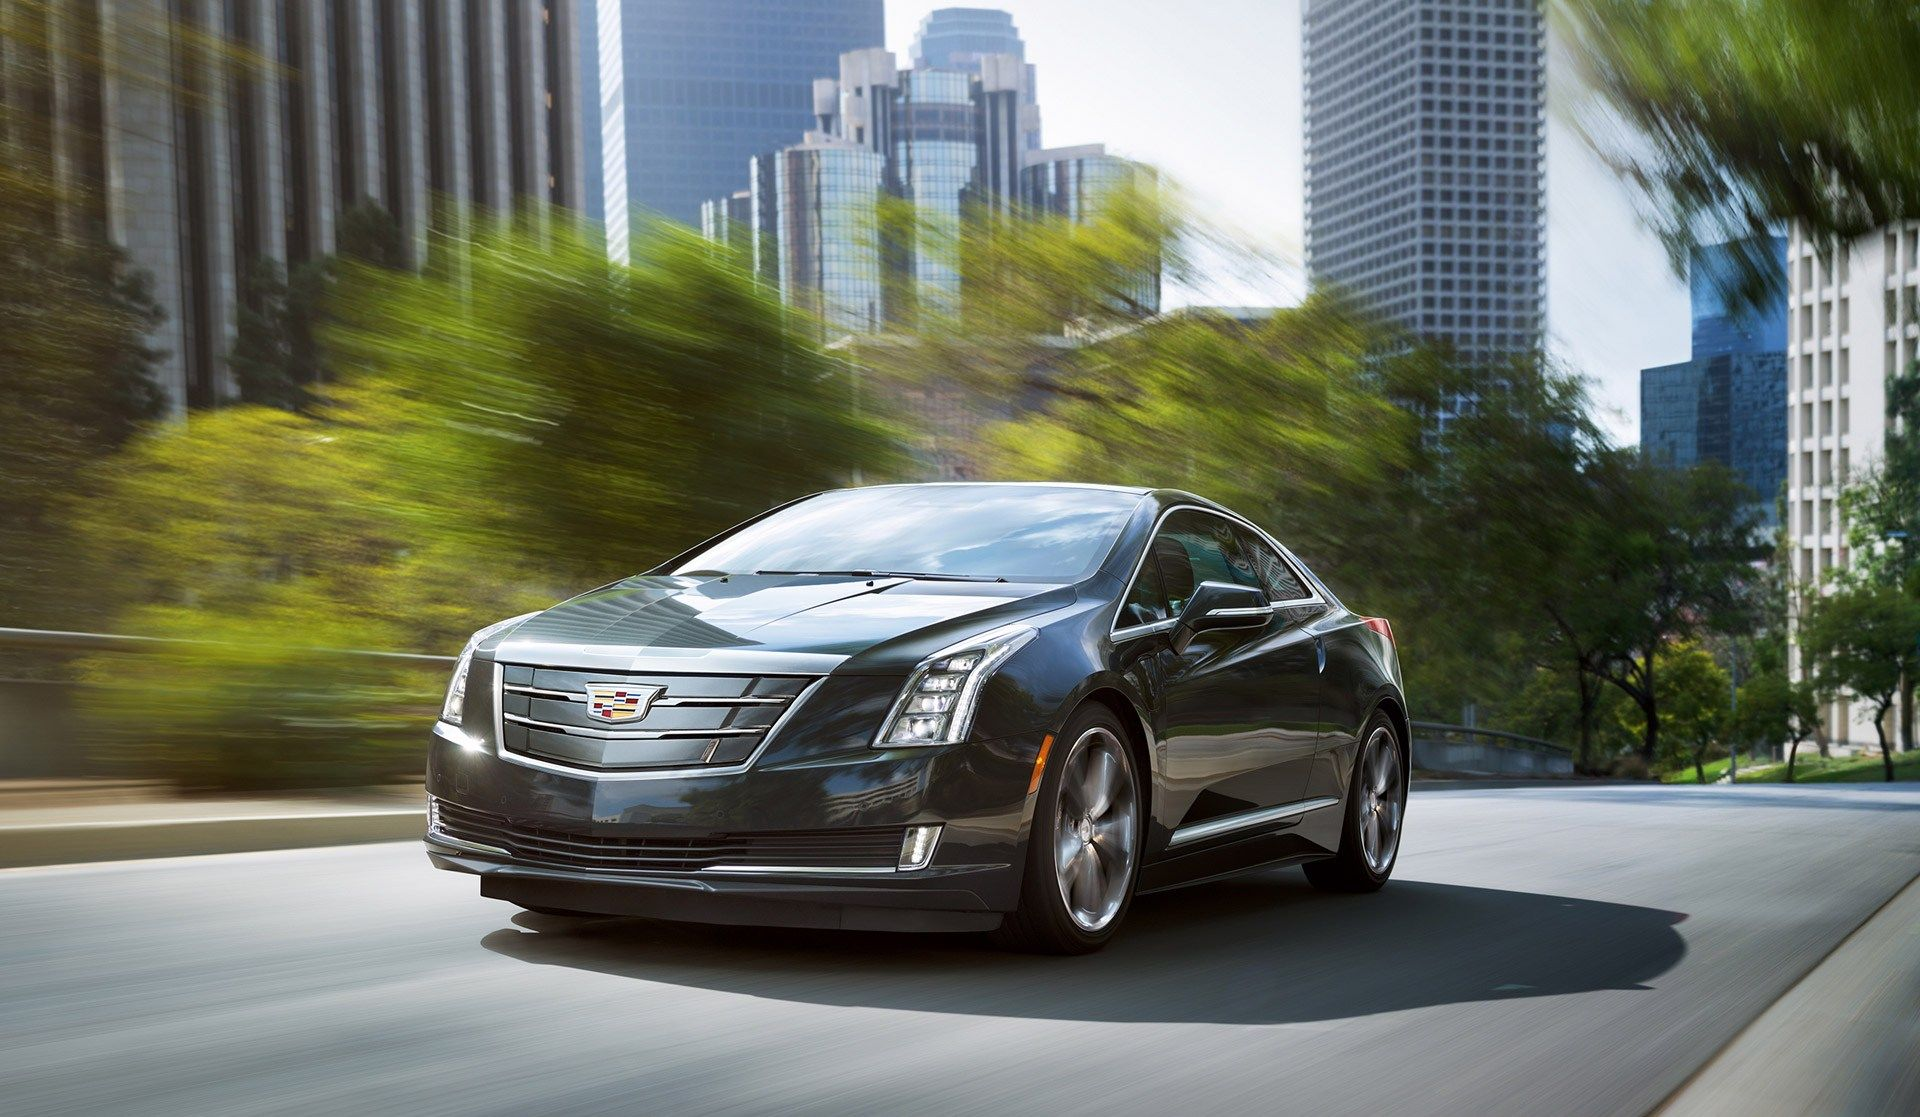 51 A 2020 Cadillac ELR Wallpaper